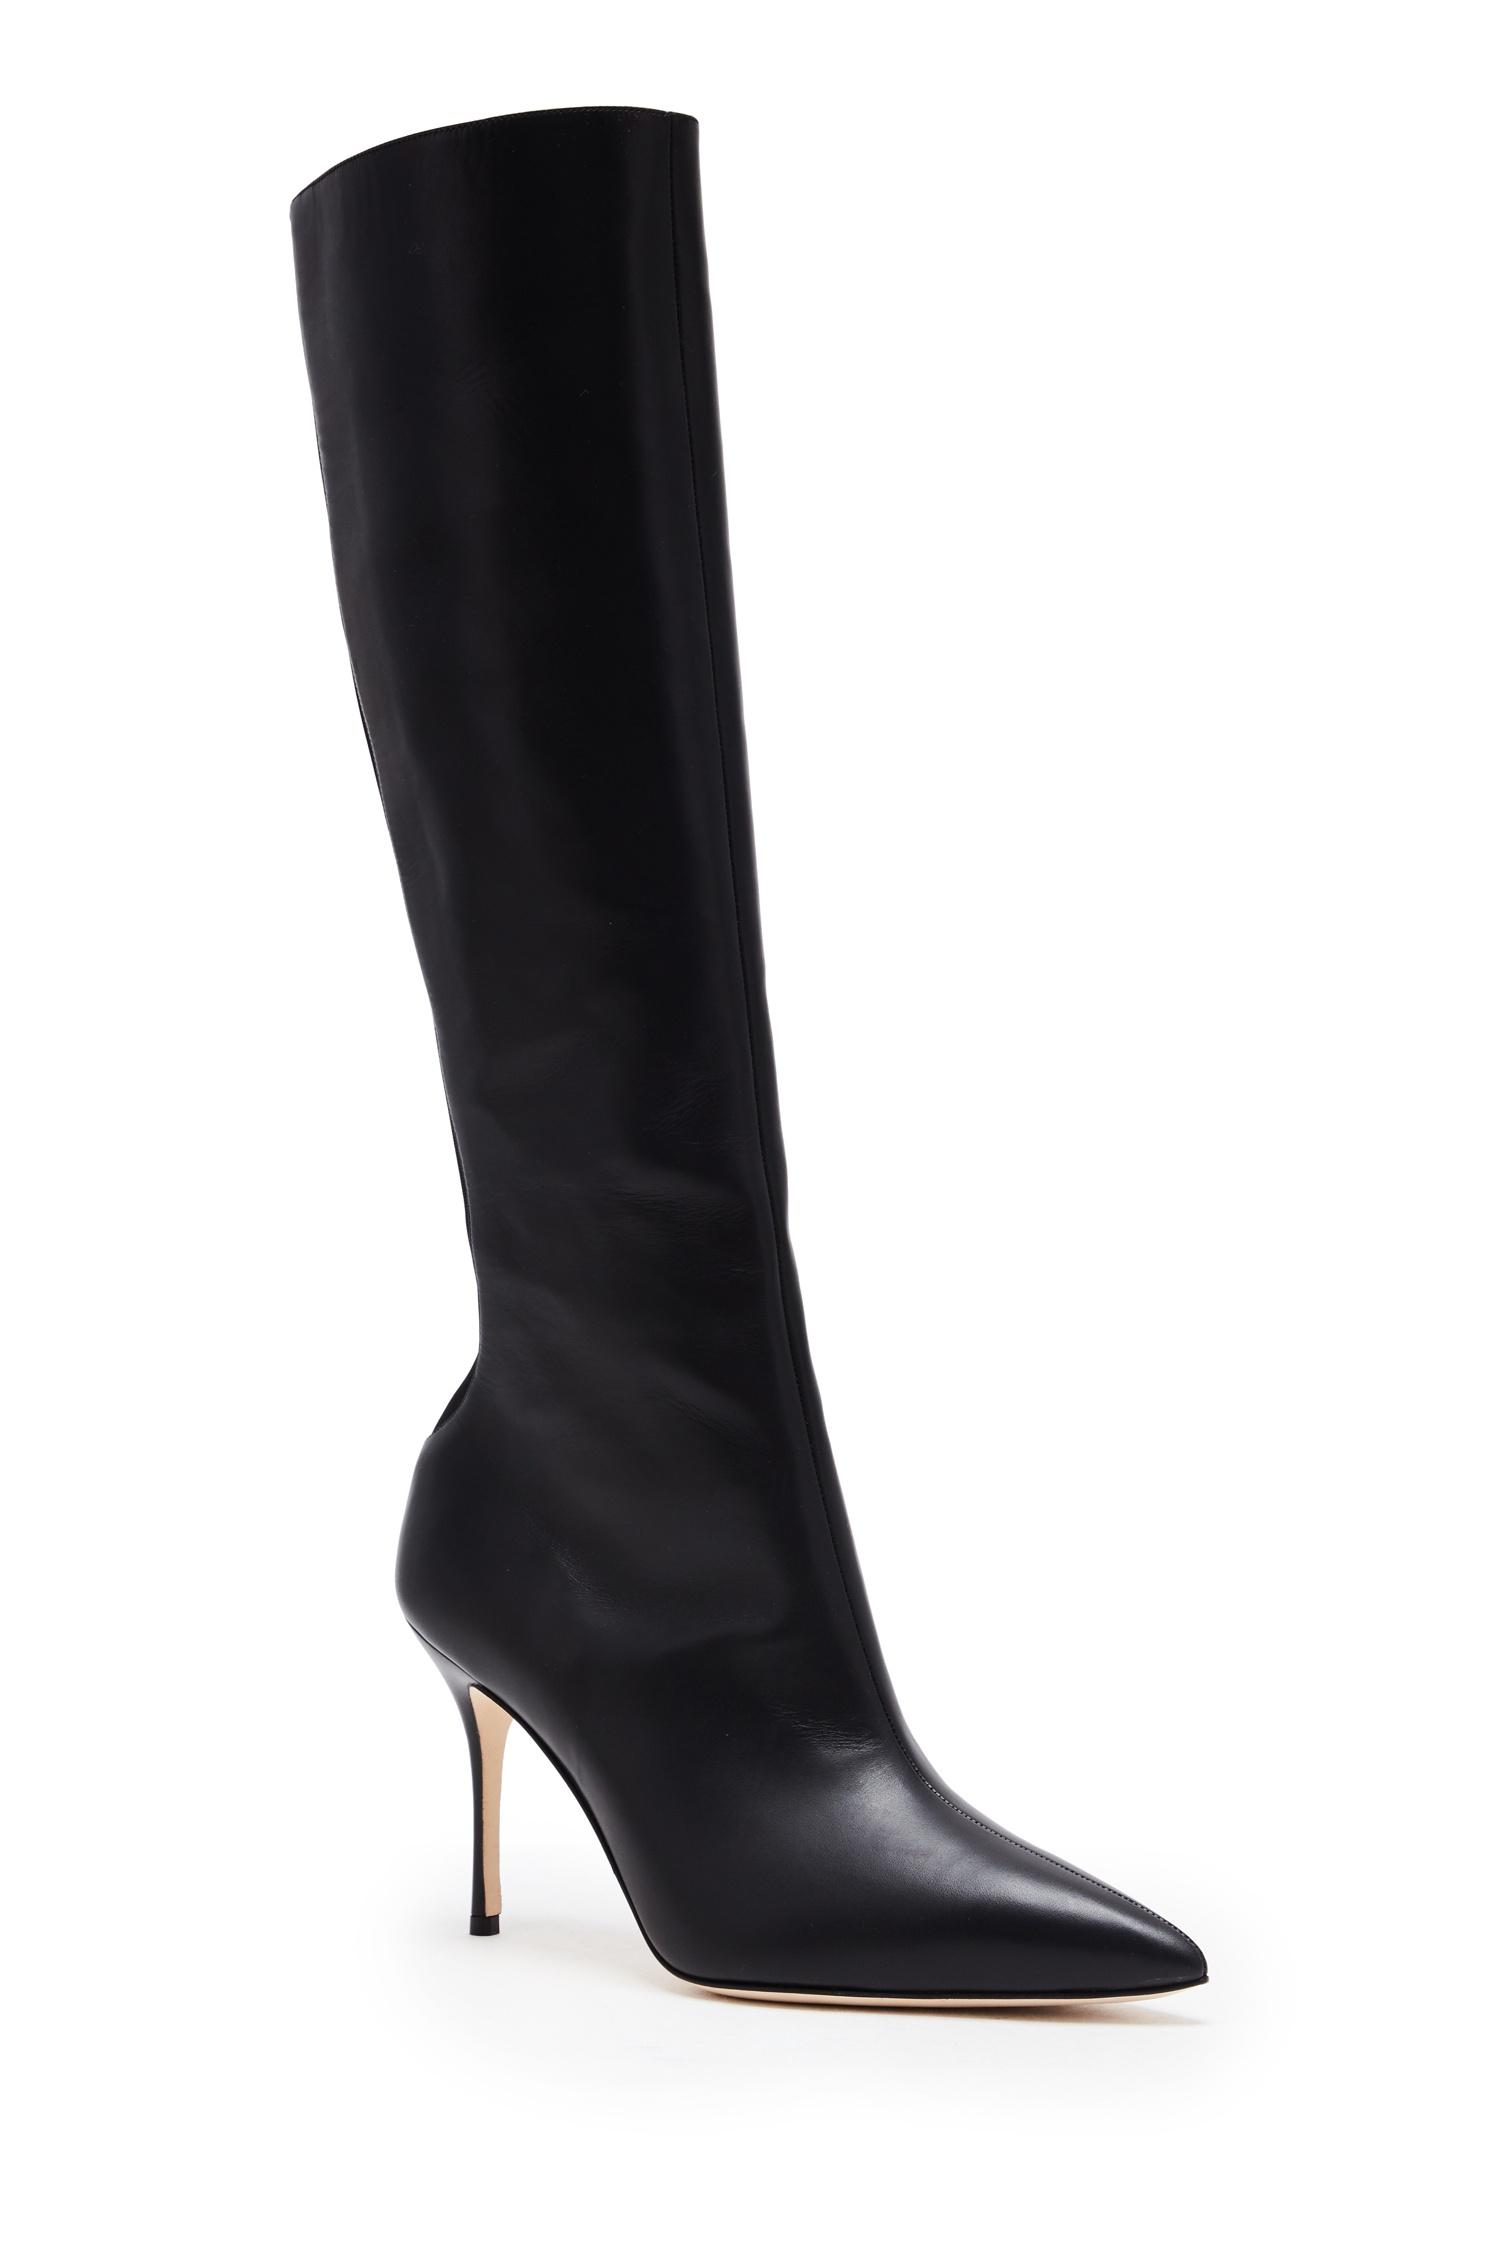 Manolo Blahnik  Clotobeck Leather Boots